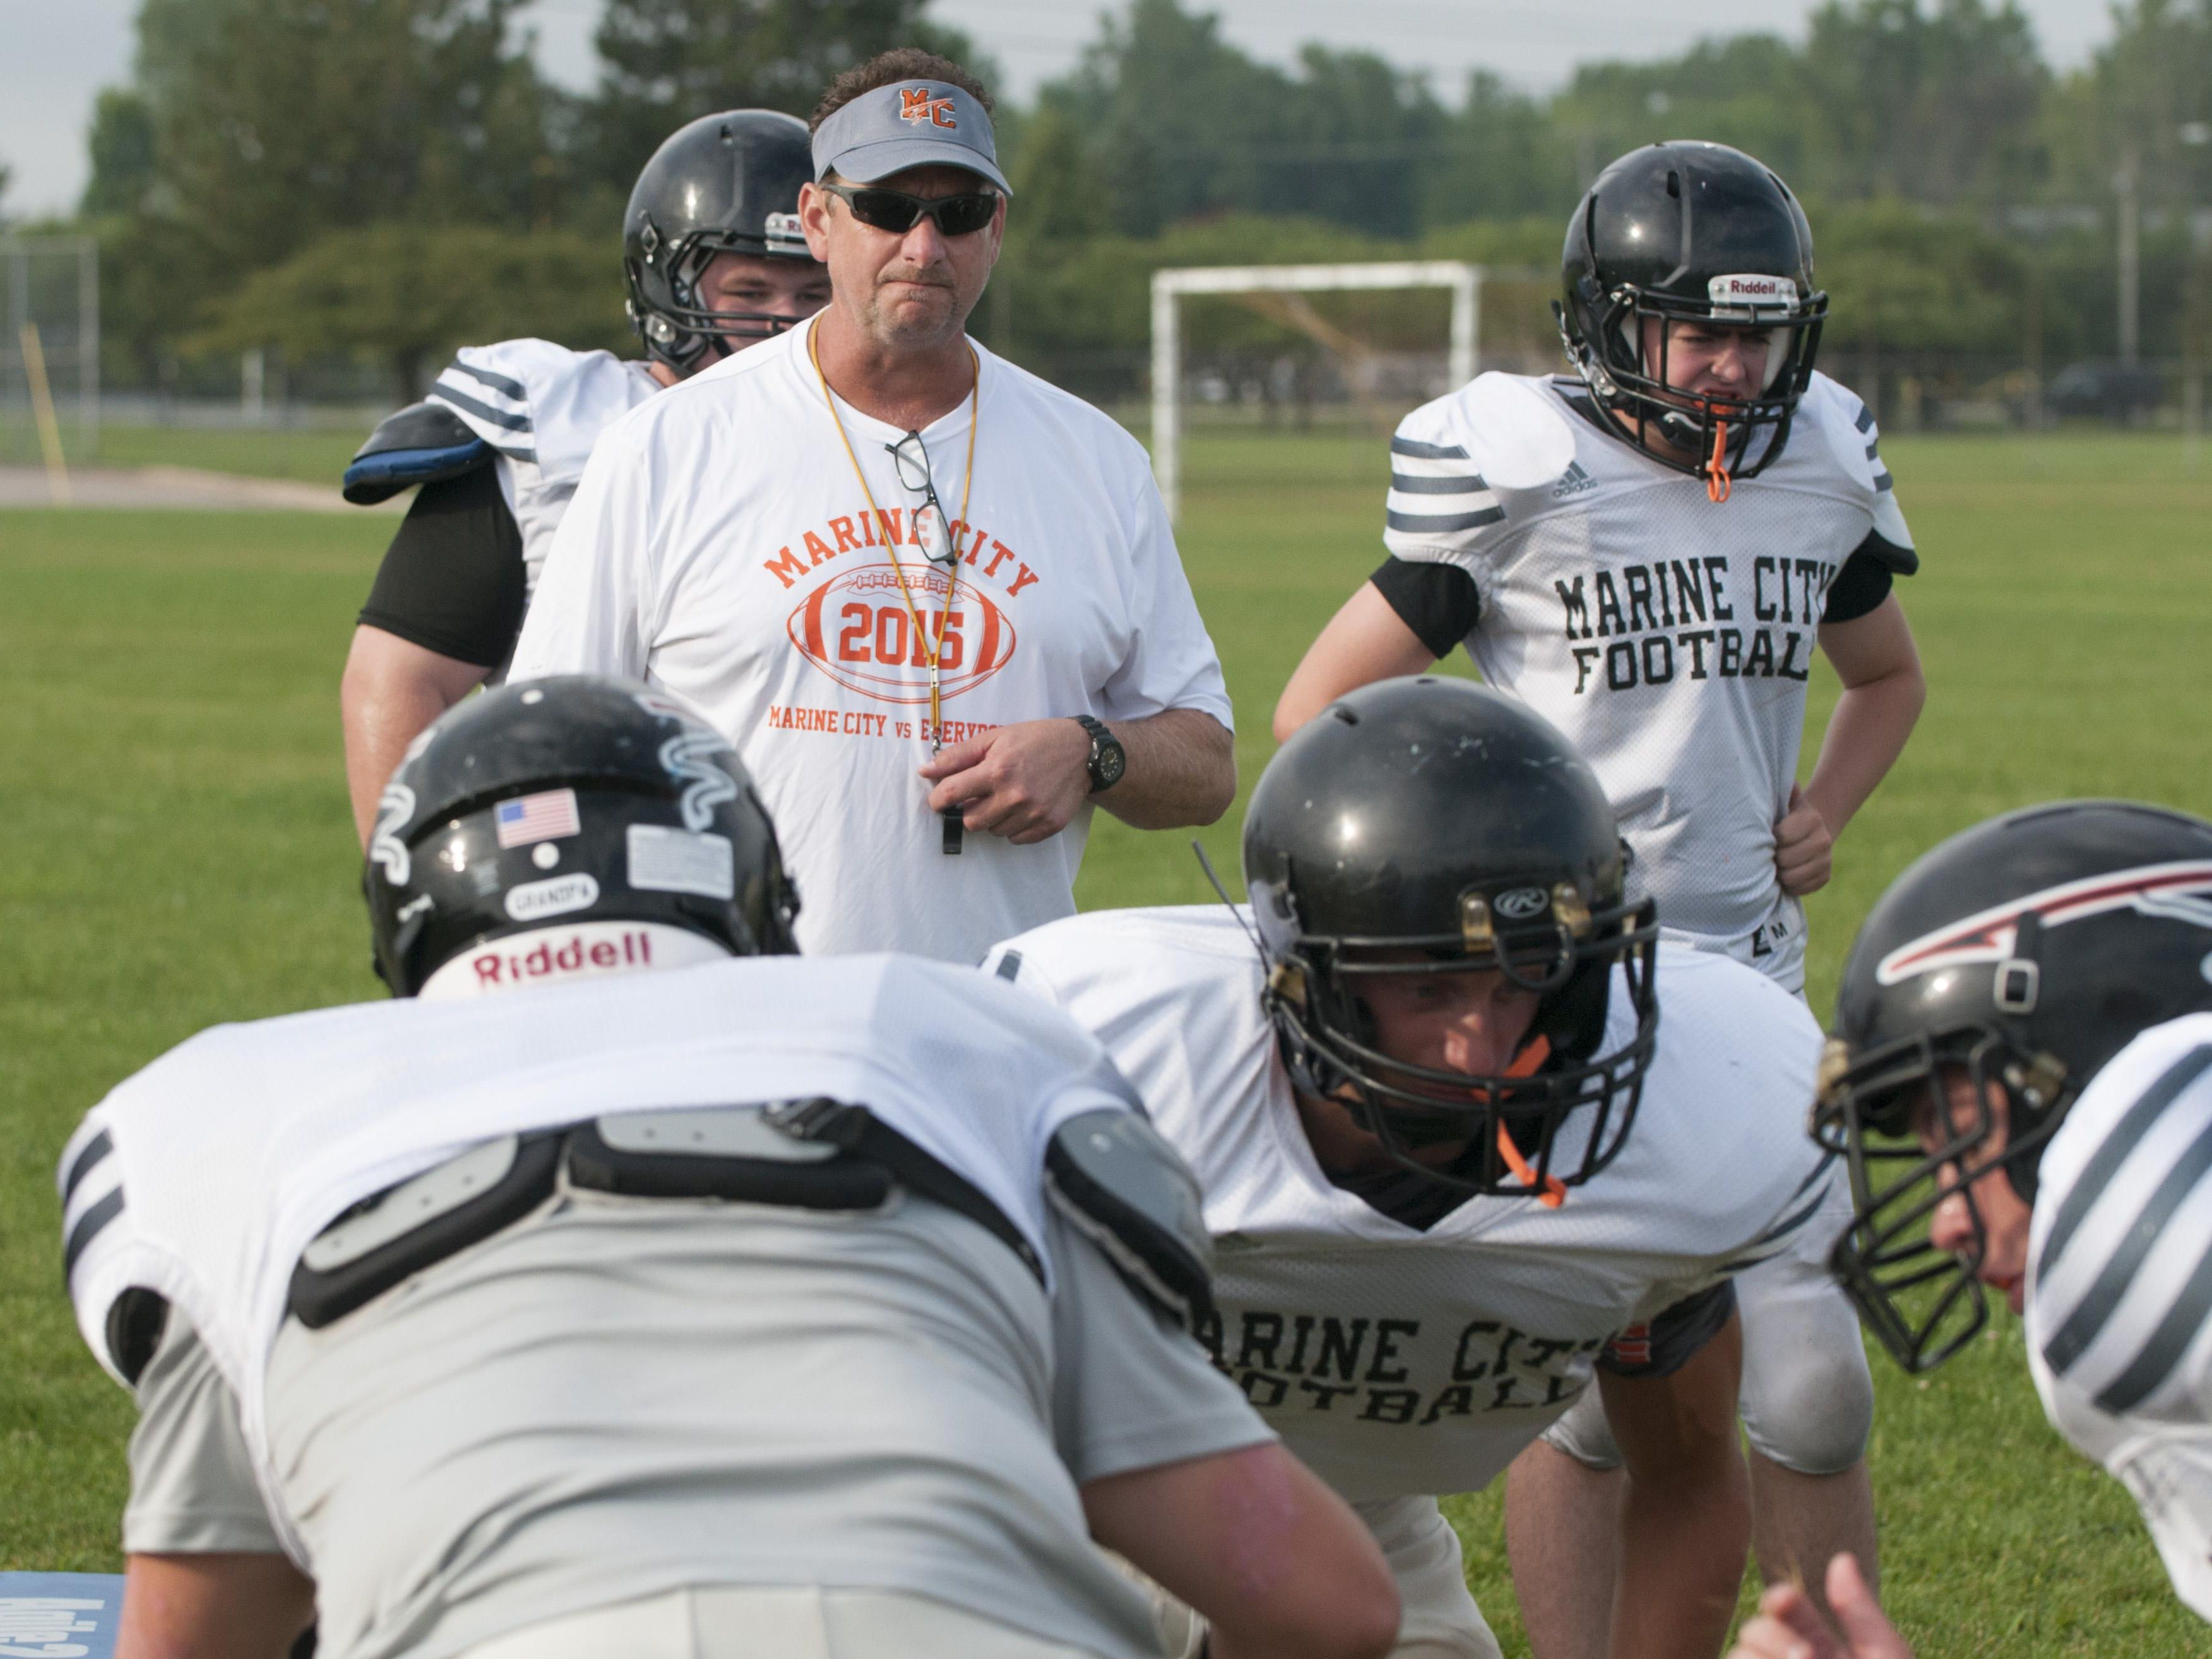 Marine City coach Ron Glodich watches his players run through a blocking drill Monday, Aug. 15, 2016 at Marine City High School.